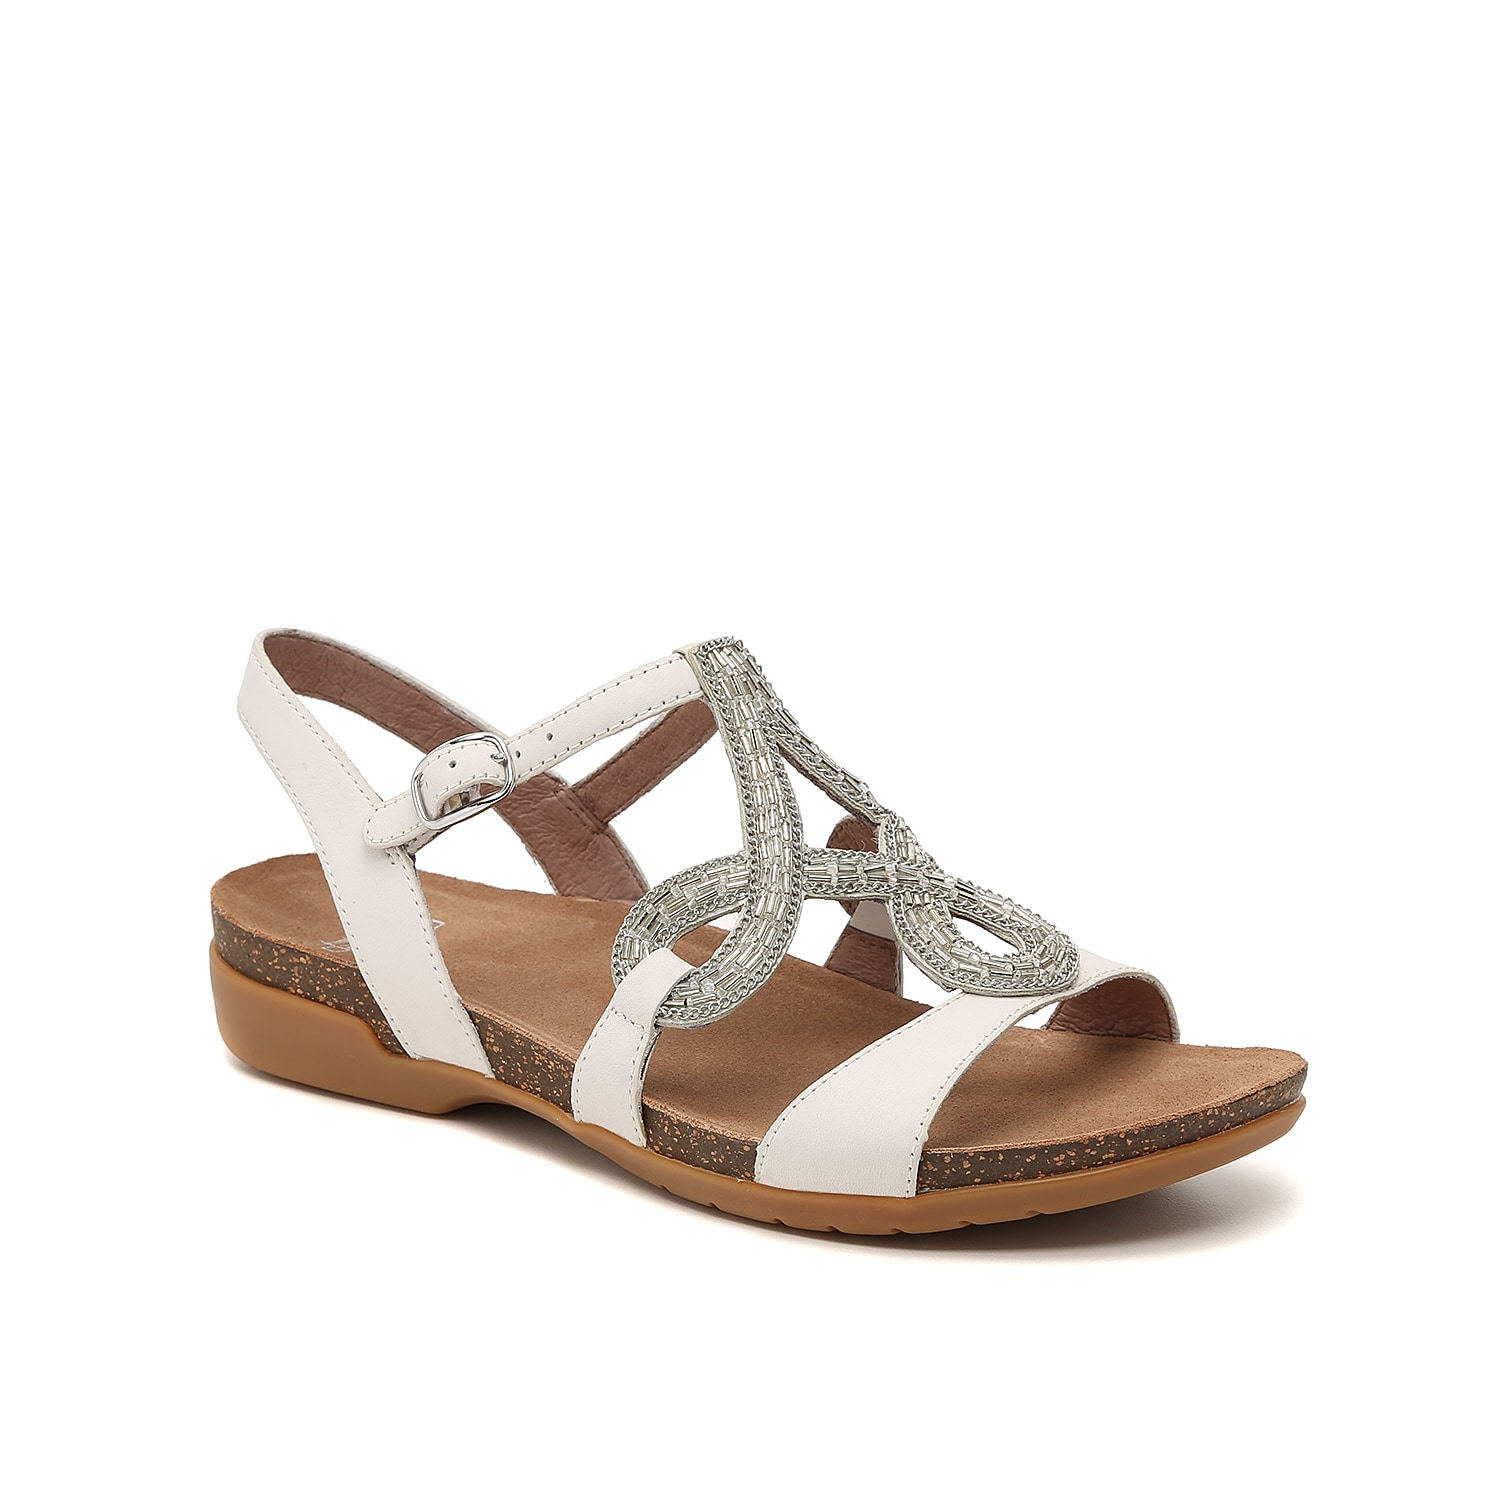 Styled with a beaded fleur-de-lis design, the Reeta sandals from Dansko elegantly blend feminine fashion with comfort features. A sturdy outsole provides grip and sure-footing, while an all-leather upper for lasting wearability.